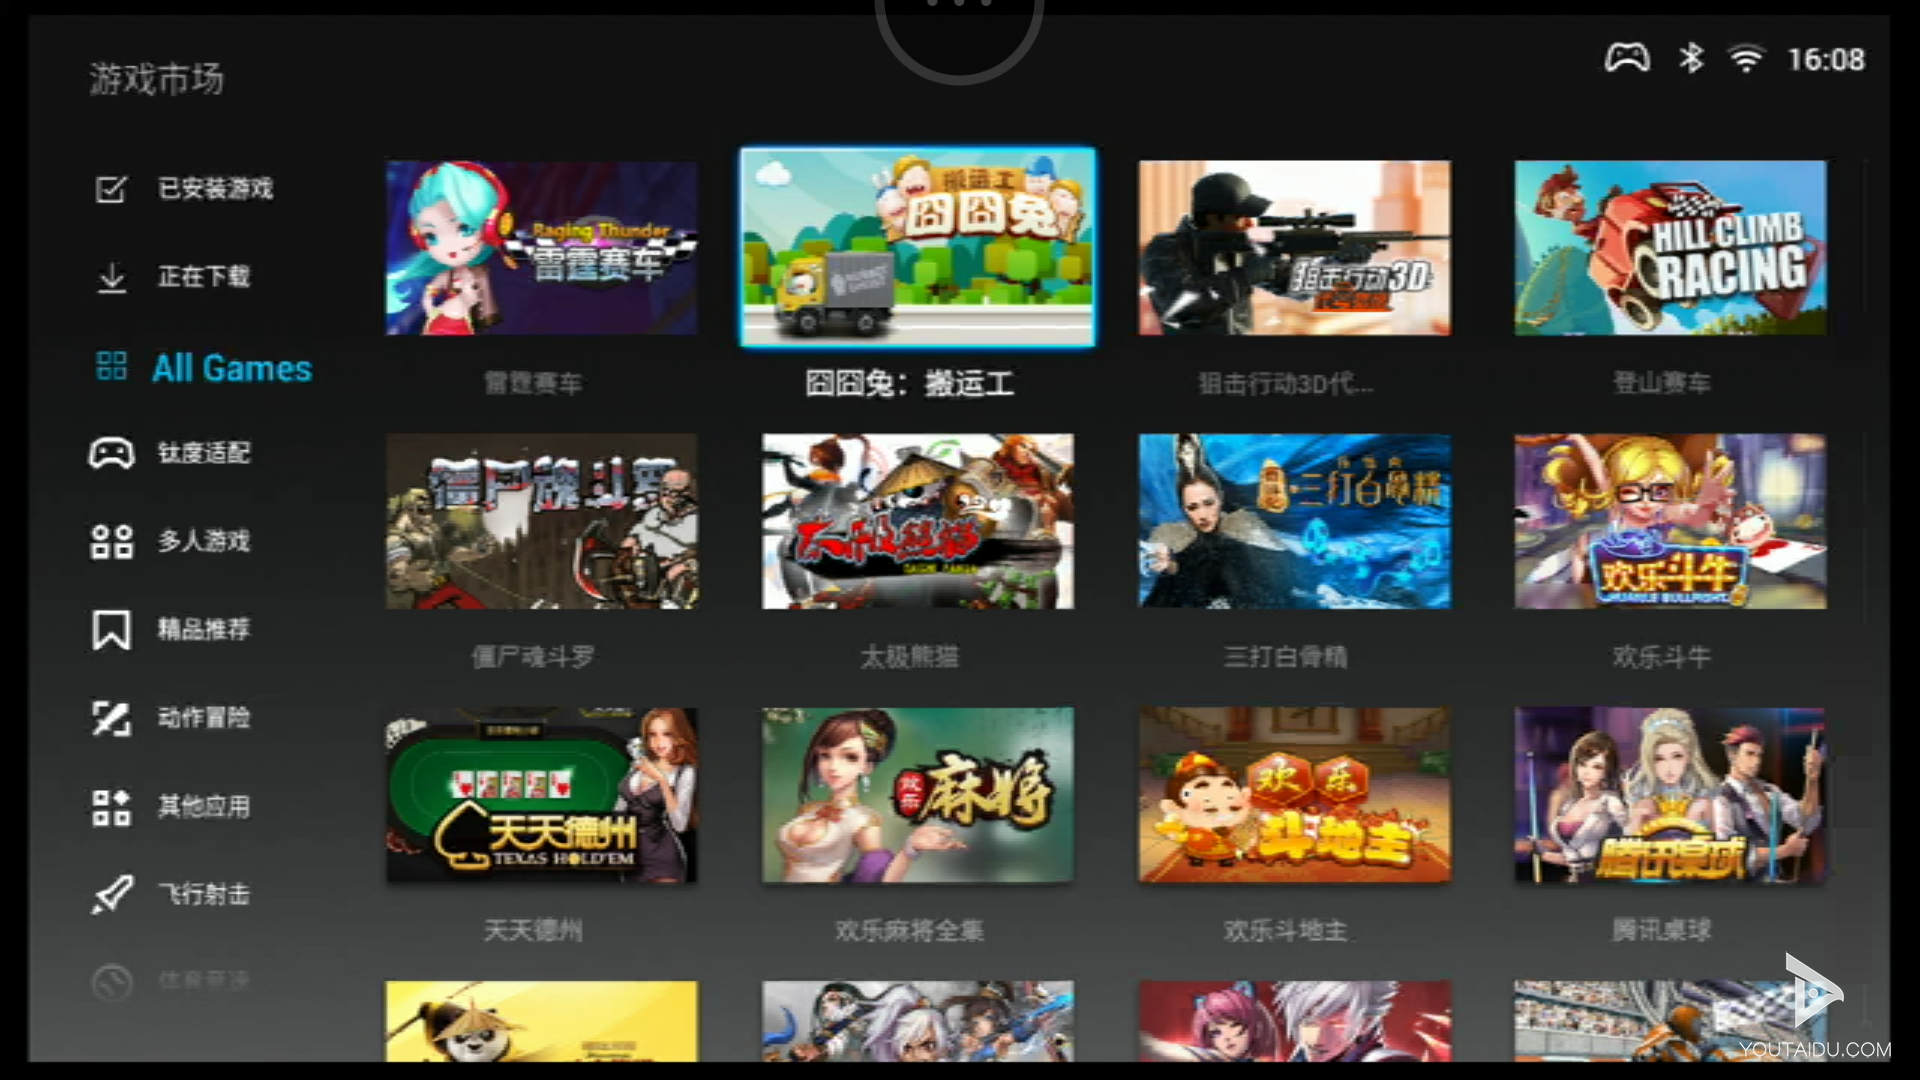 Screenshot_2016-11-18-16-09-03_com.tencent.gamestation.control.png